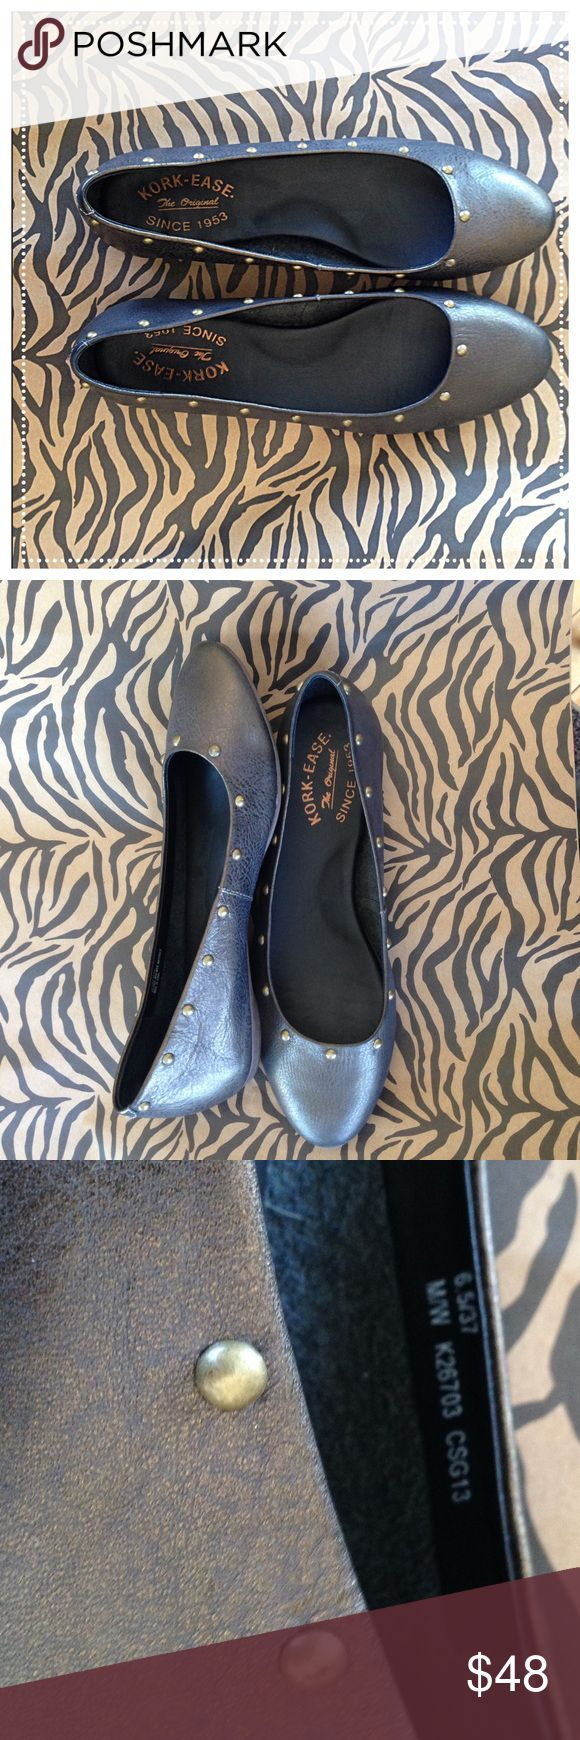 Kork-Ease Gunmetal Leather Round toe flats 6.5/37 Kork-Ease Gunmetal Leather Round toe flats 6.5/37 Never worn swap from one of my clients they are so comfortable! Size 6.5 ladies Kork-Ease Shoes